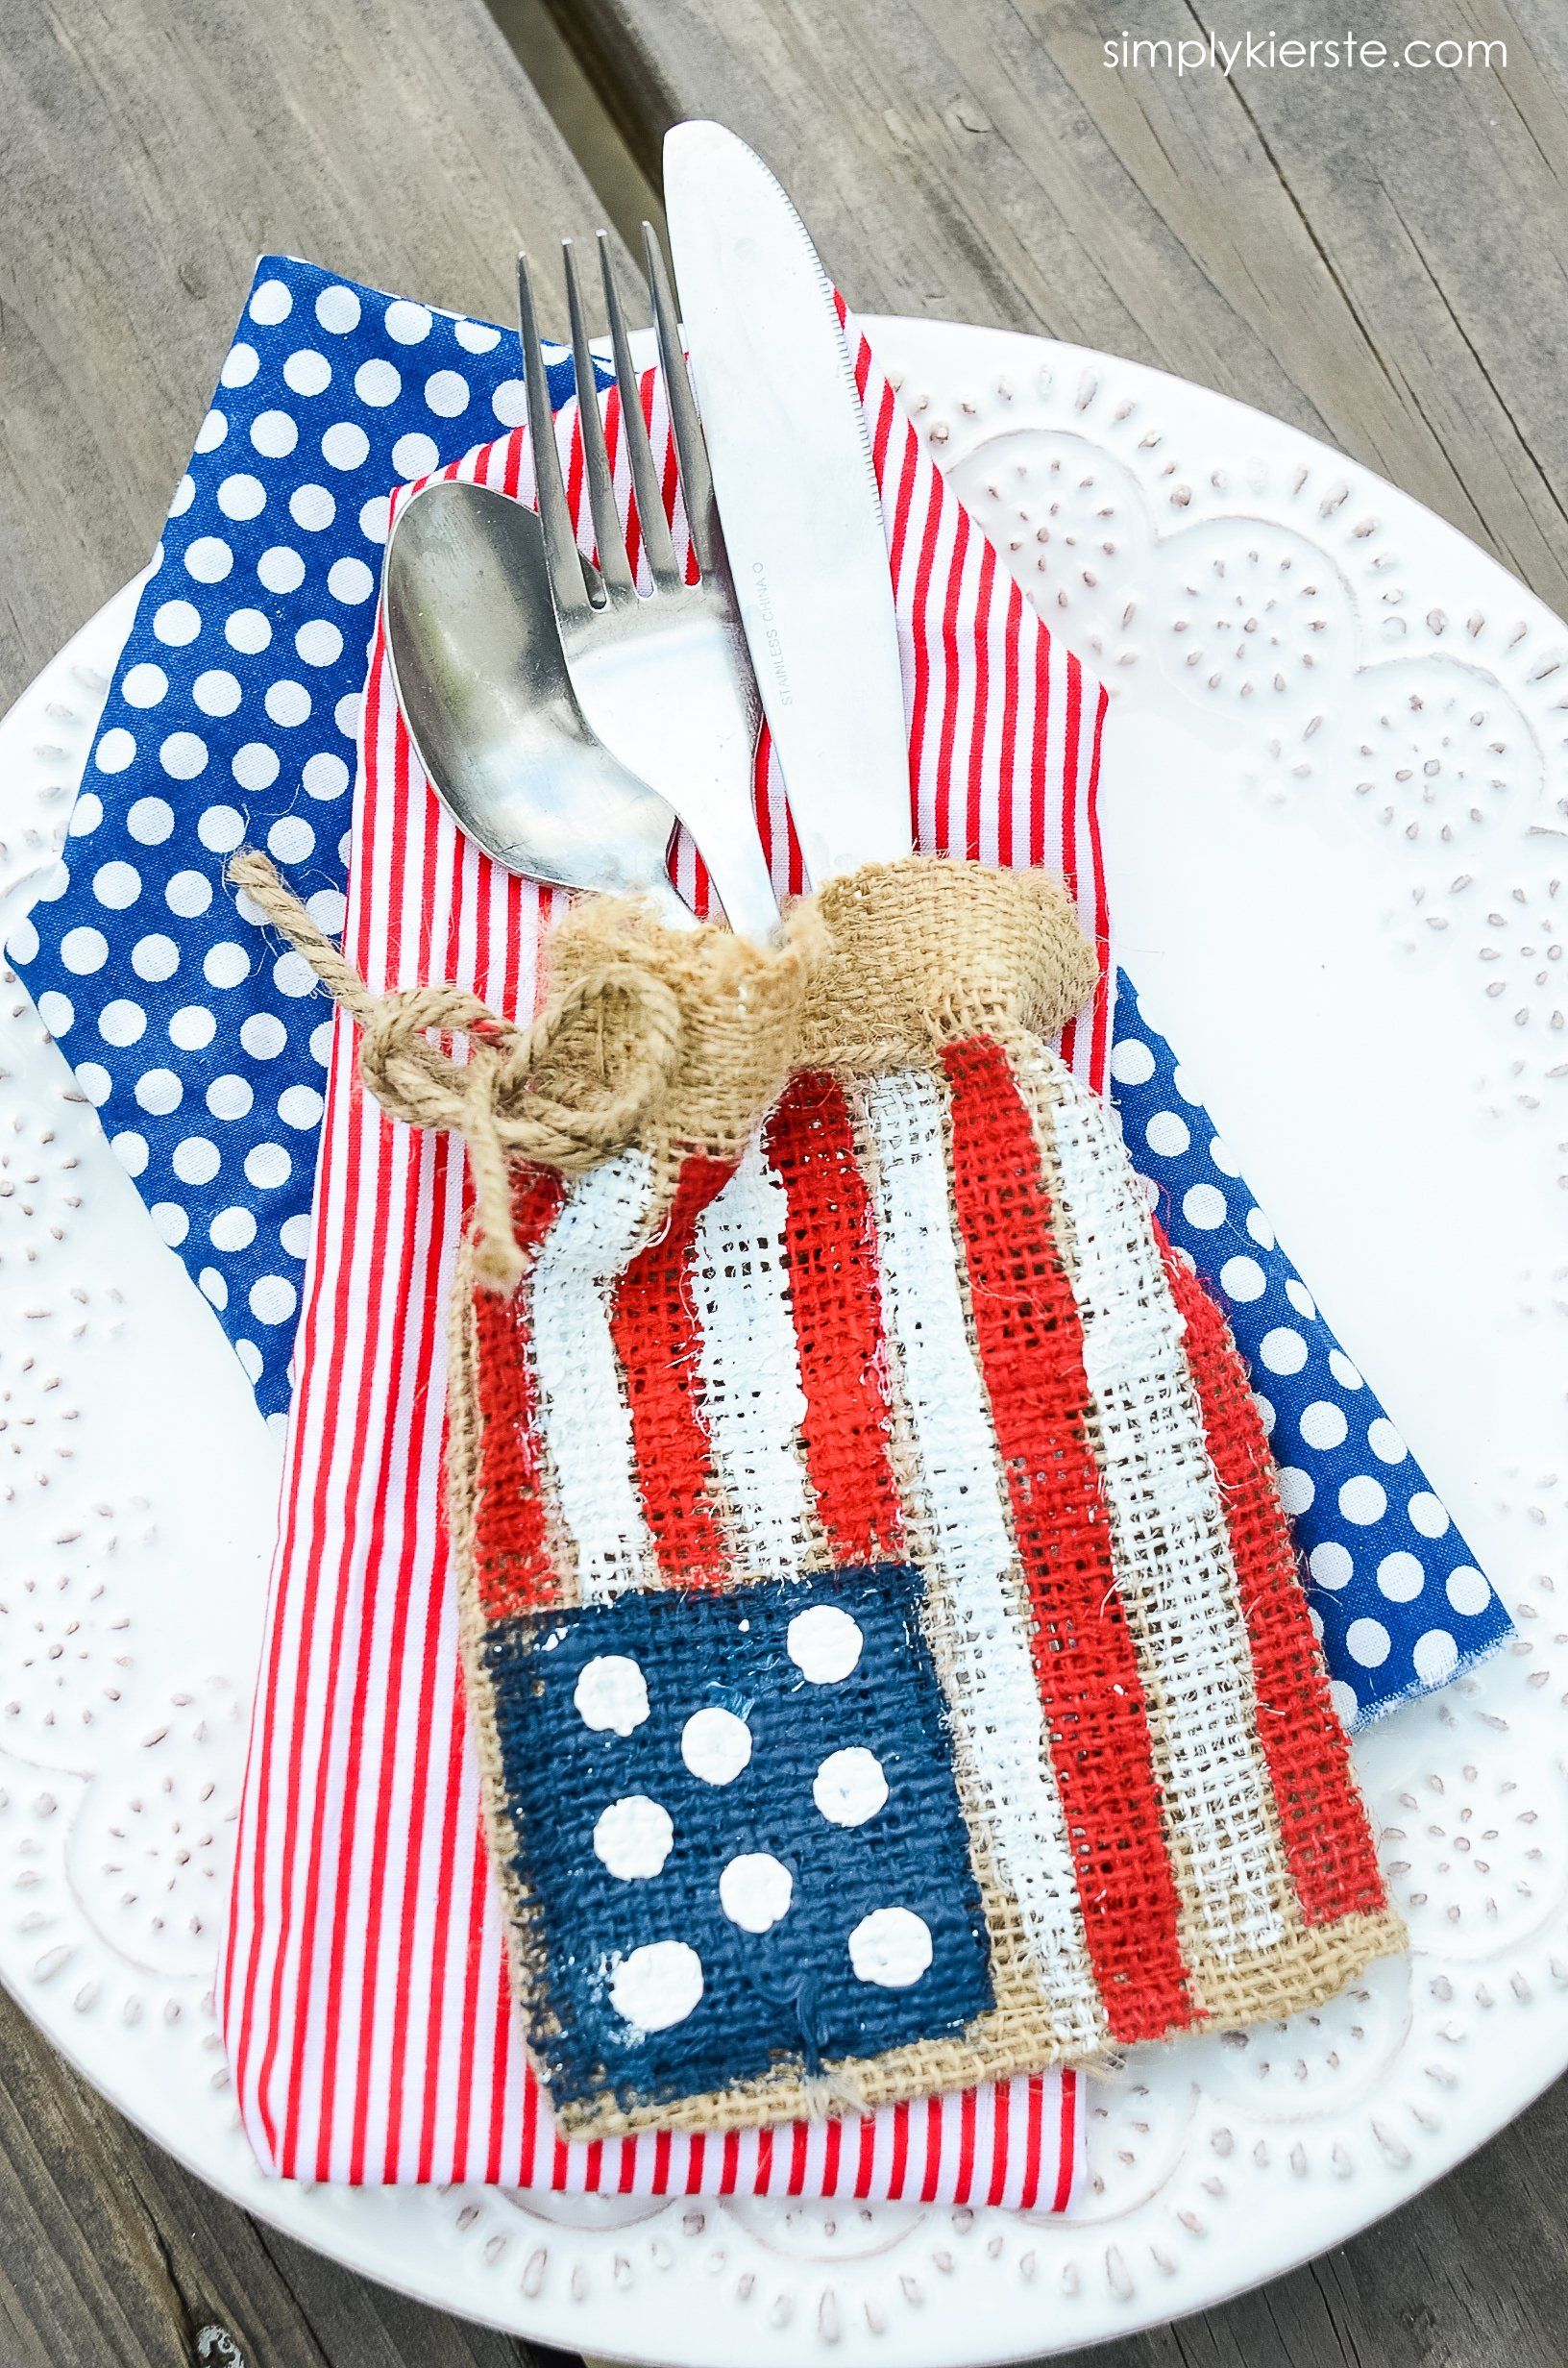 Burlap Flag Silverware Holder | 4th of July | simply kierste.com